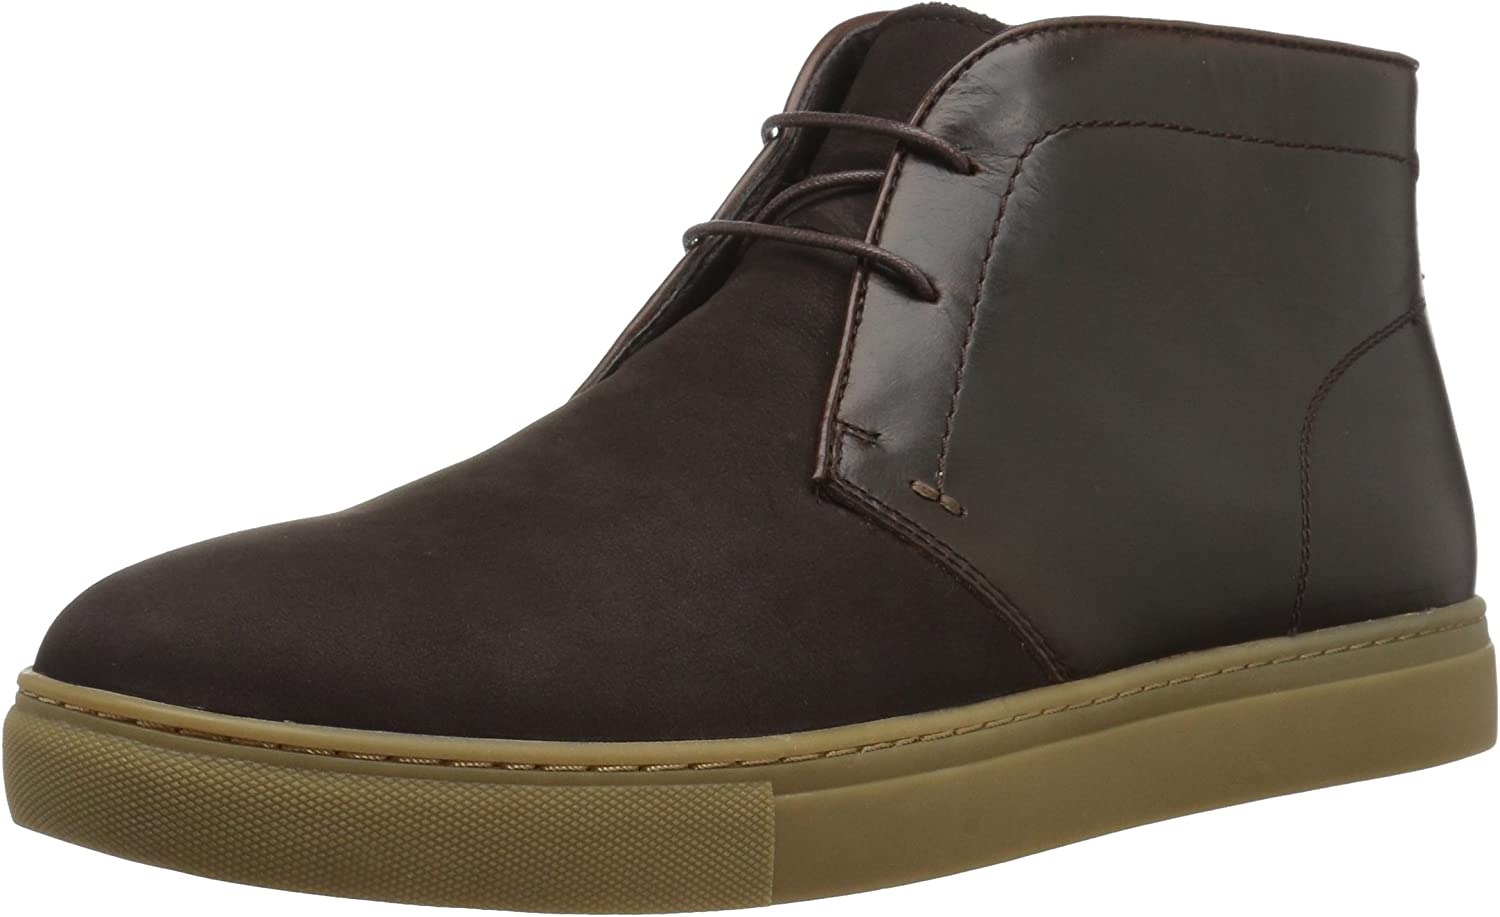 English Laundry Men's Laxey Fashion Sneaker, Brown, 9 M US